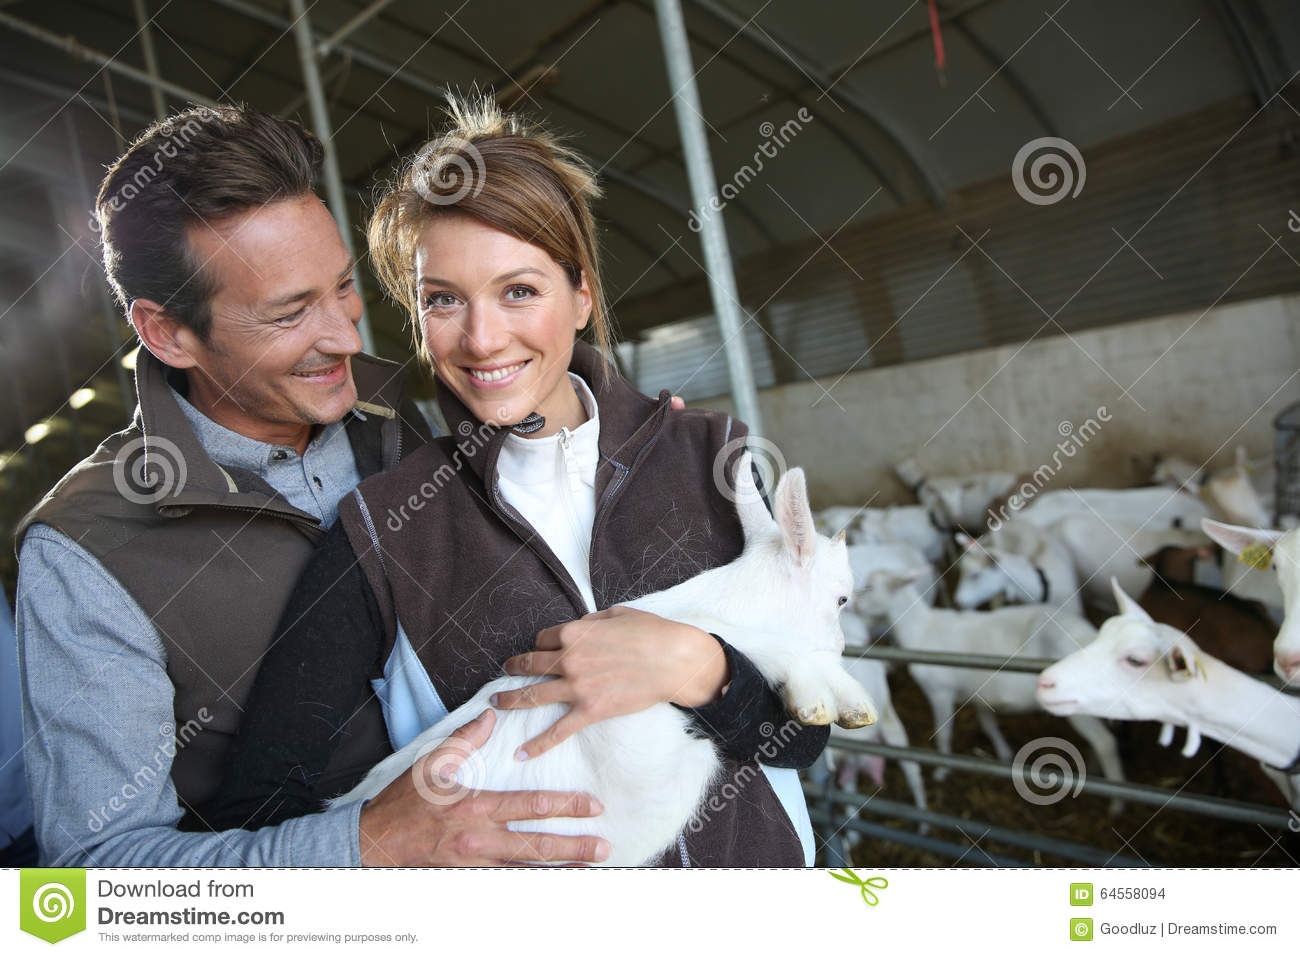 Breeders in farm holding a baby goat